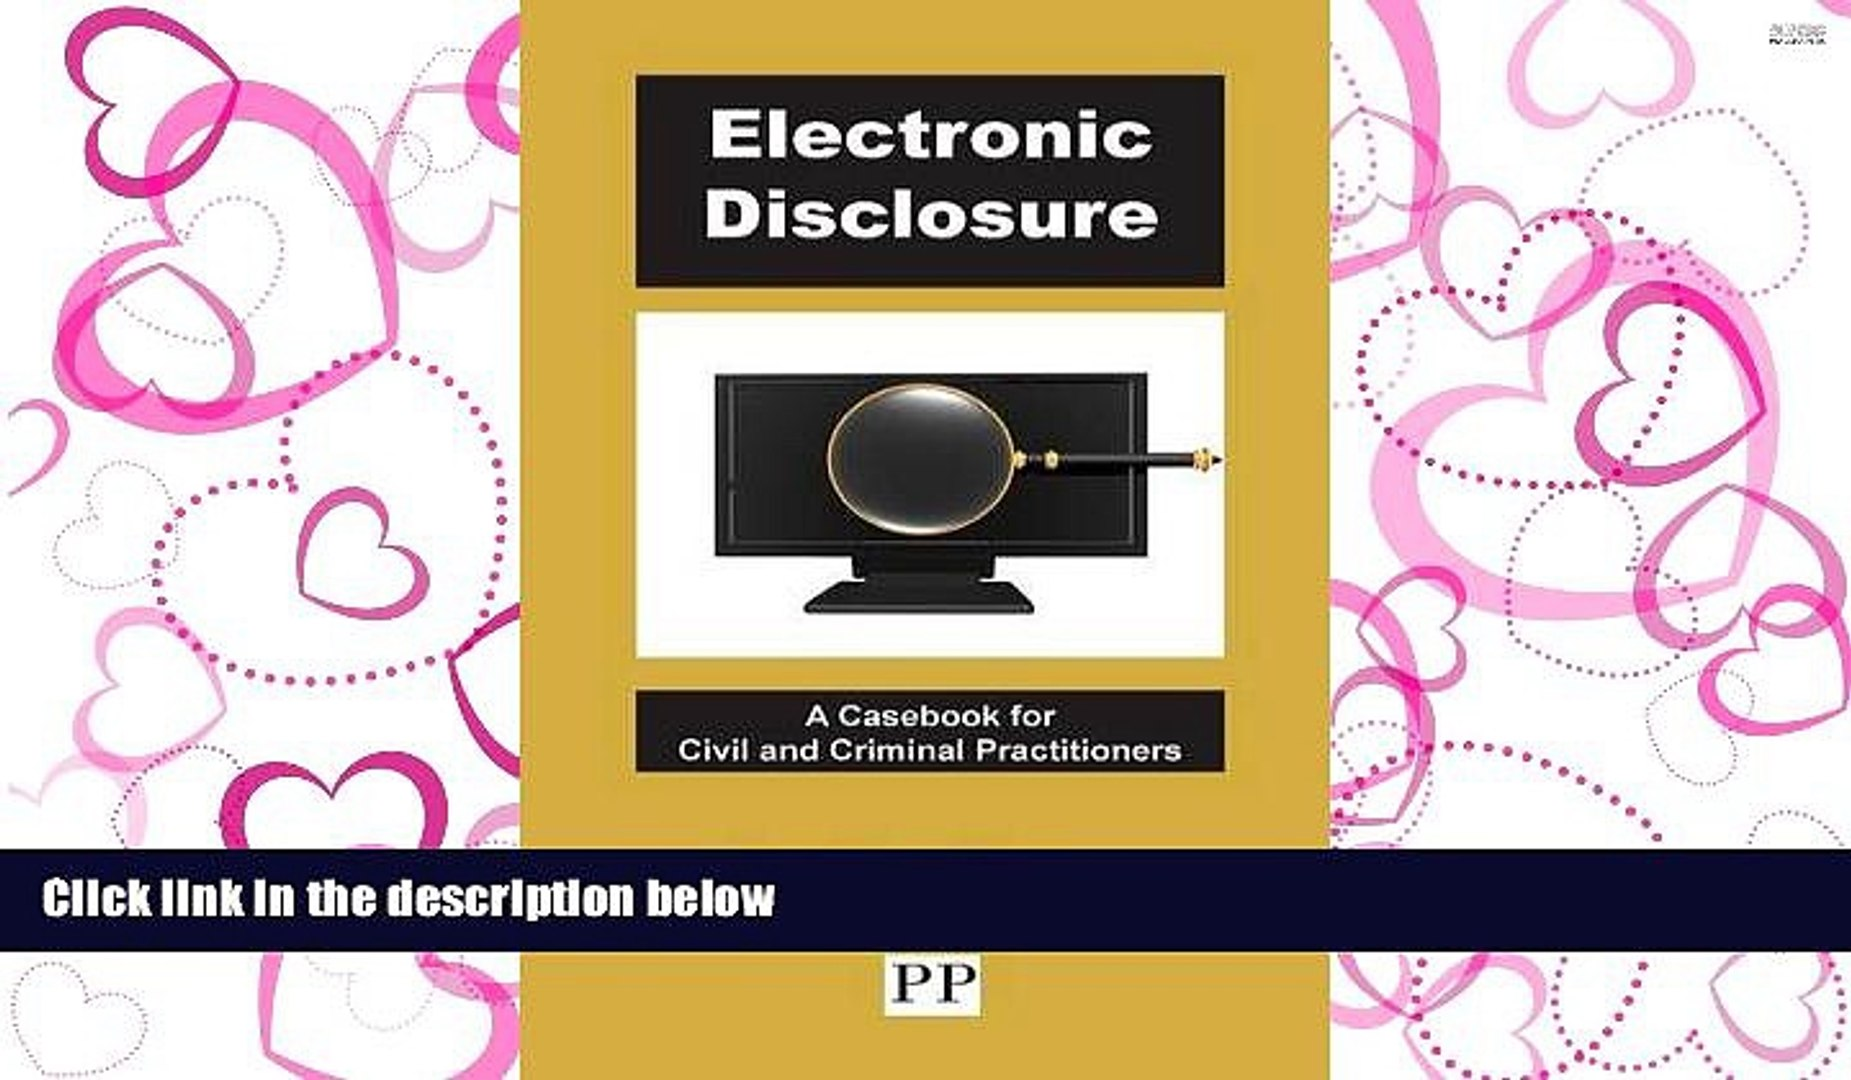 BEST PDF  Electronic Disclosure - A Casebook for Civil and Criminal Practitioners TRIAL EBOOK